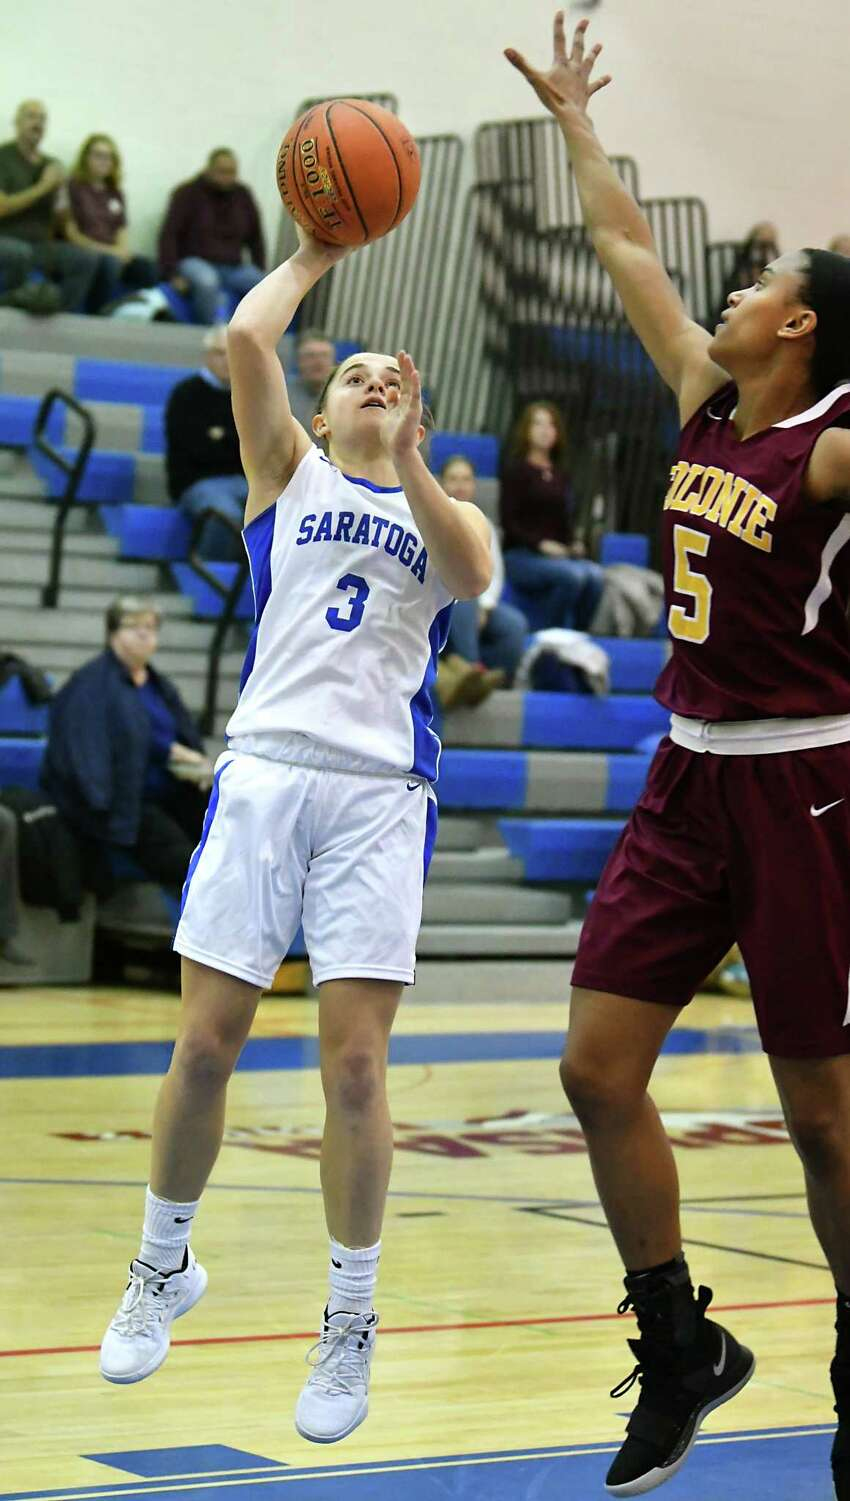 Saratoga's Catherine Cairns makes a layup guarded by Colonie's Kyara Triblet after an assist by Kerry Flaherty during a basketball game on Tuesday, Dec. 4, 2018 in Saratoga Springs, N.Y. (Lori Van Buren/Times Union)